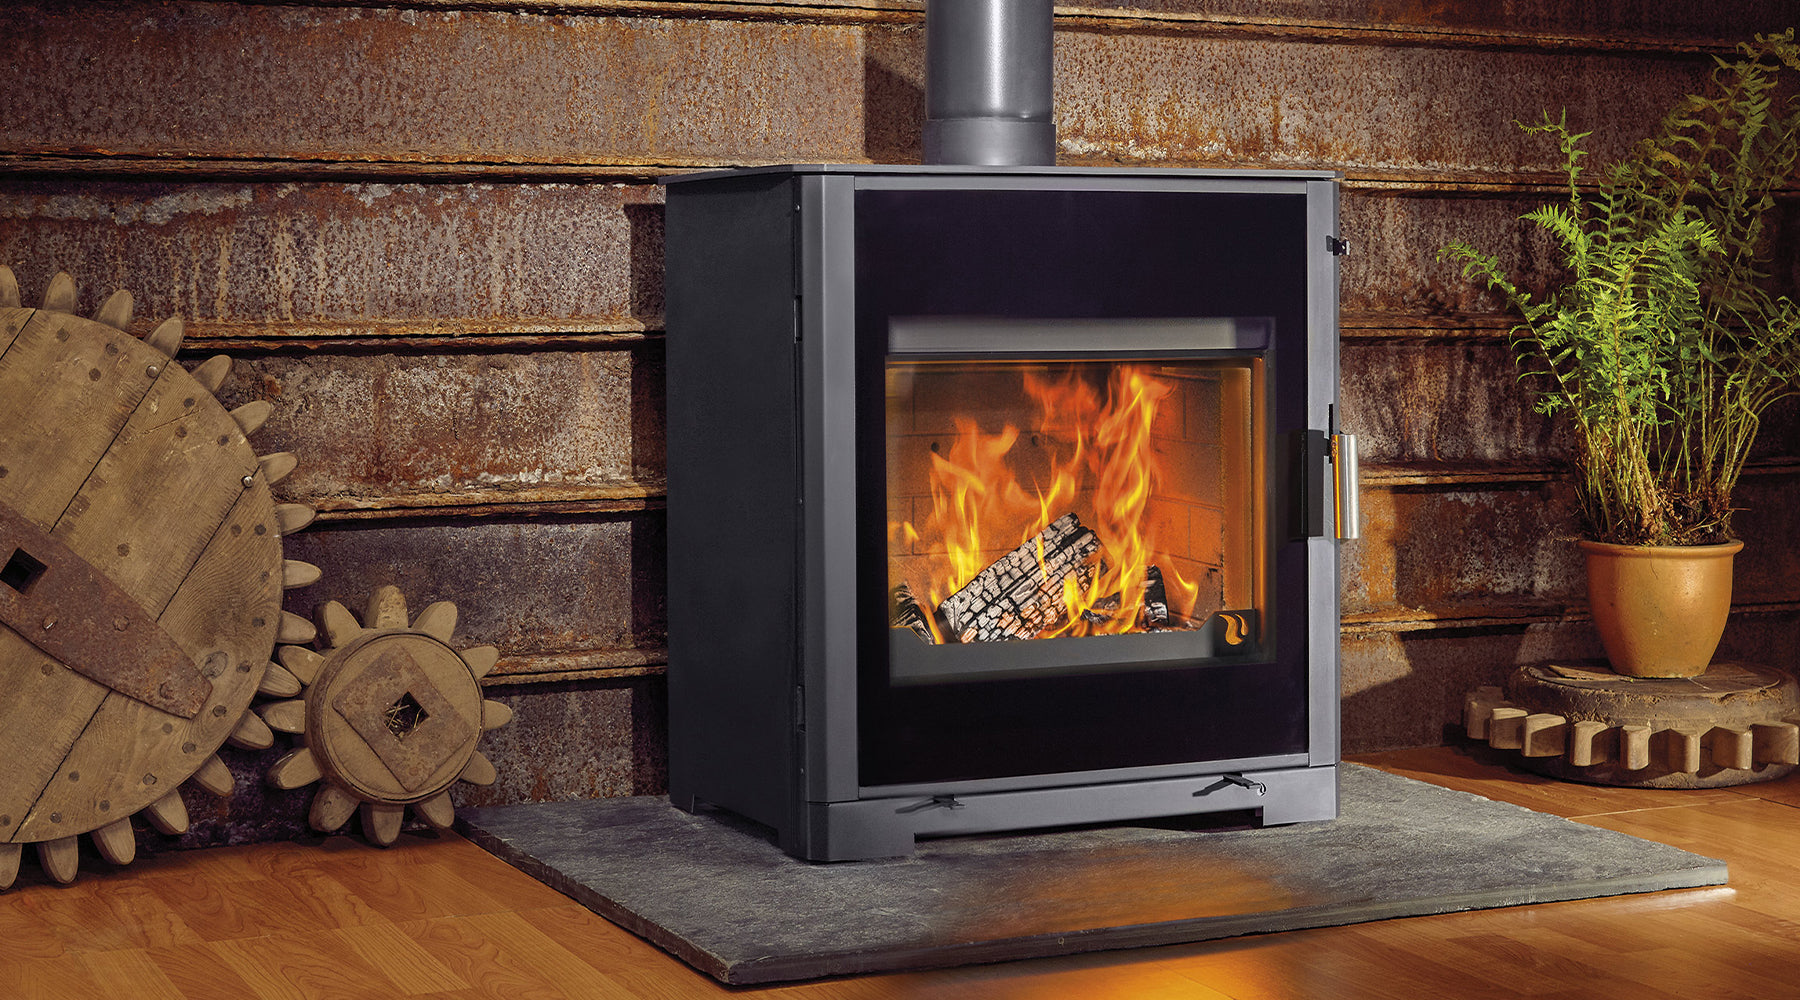 State-of-the-art Ecodesign Boiler Stoves